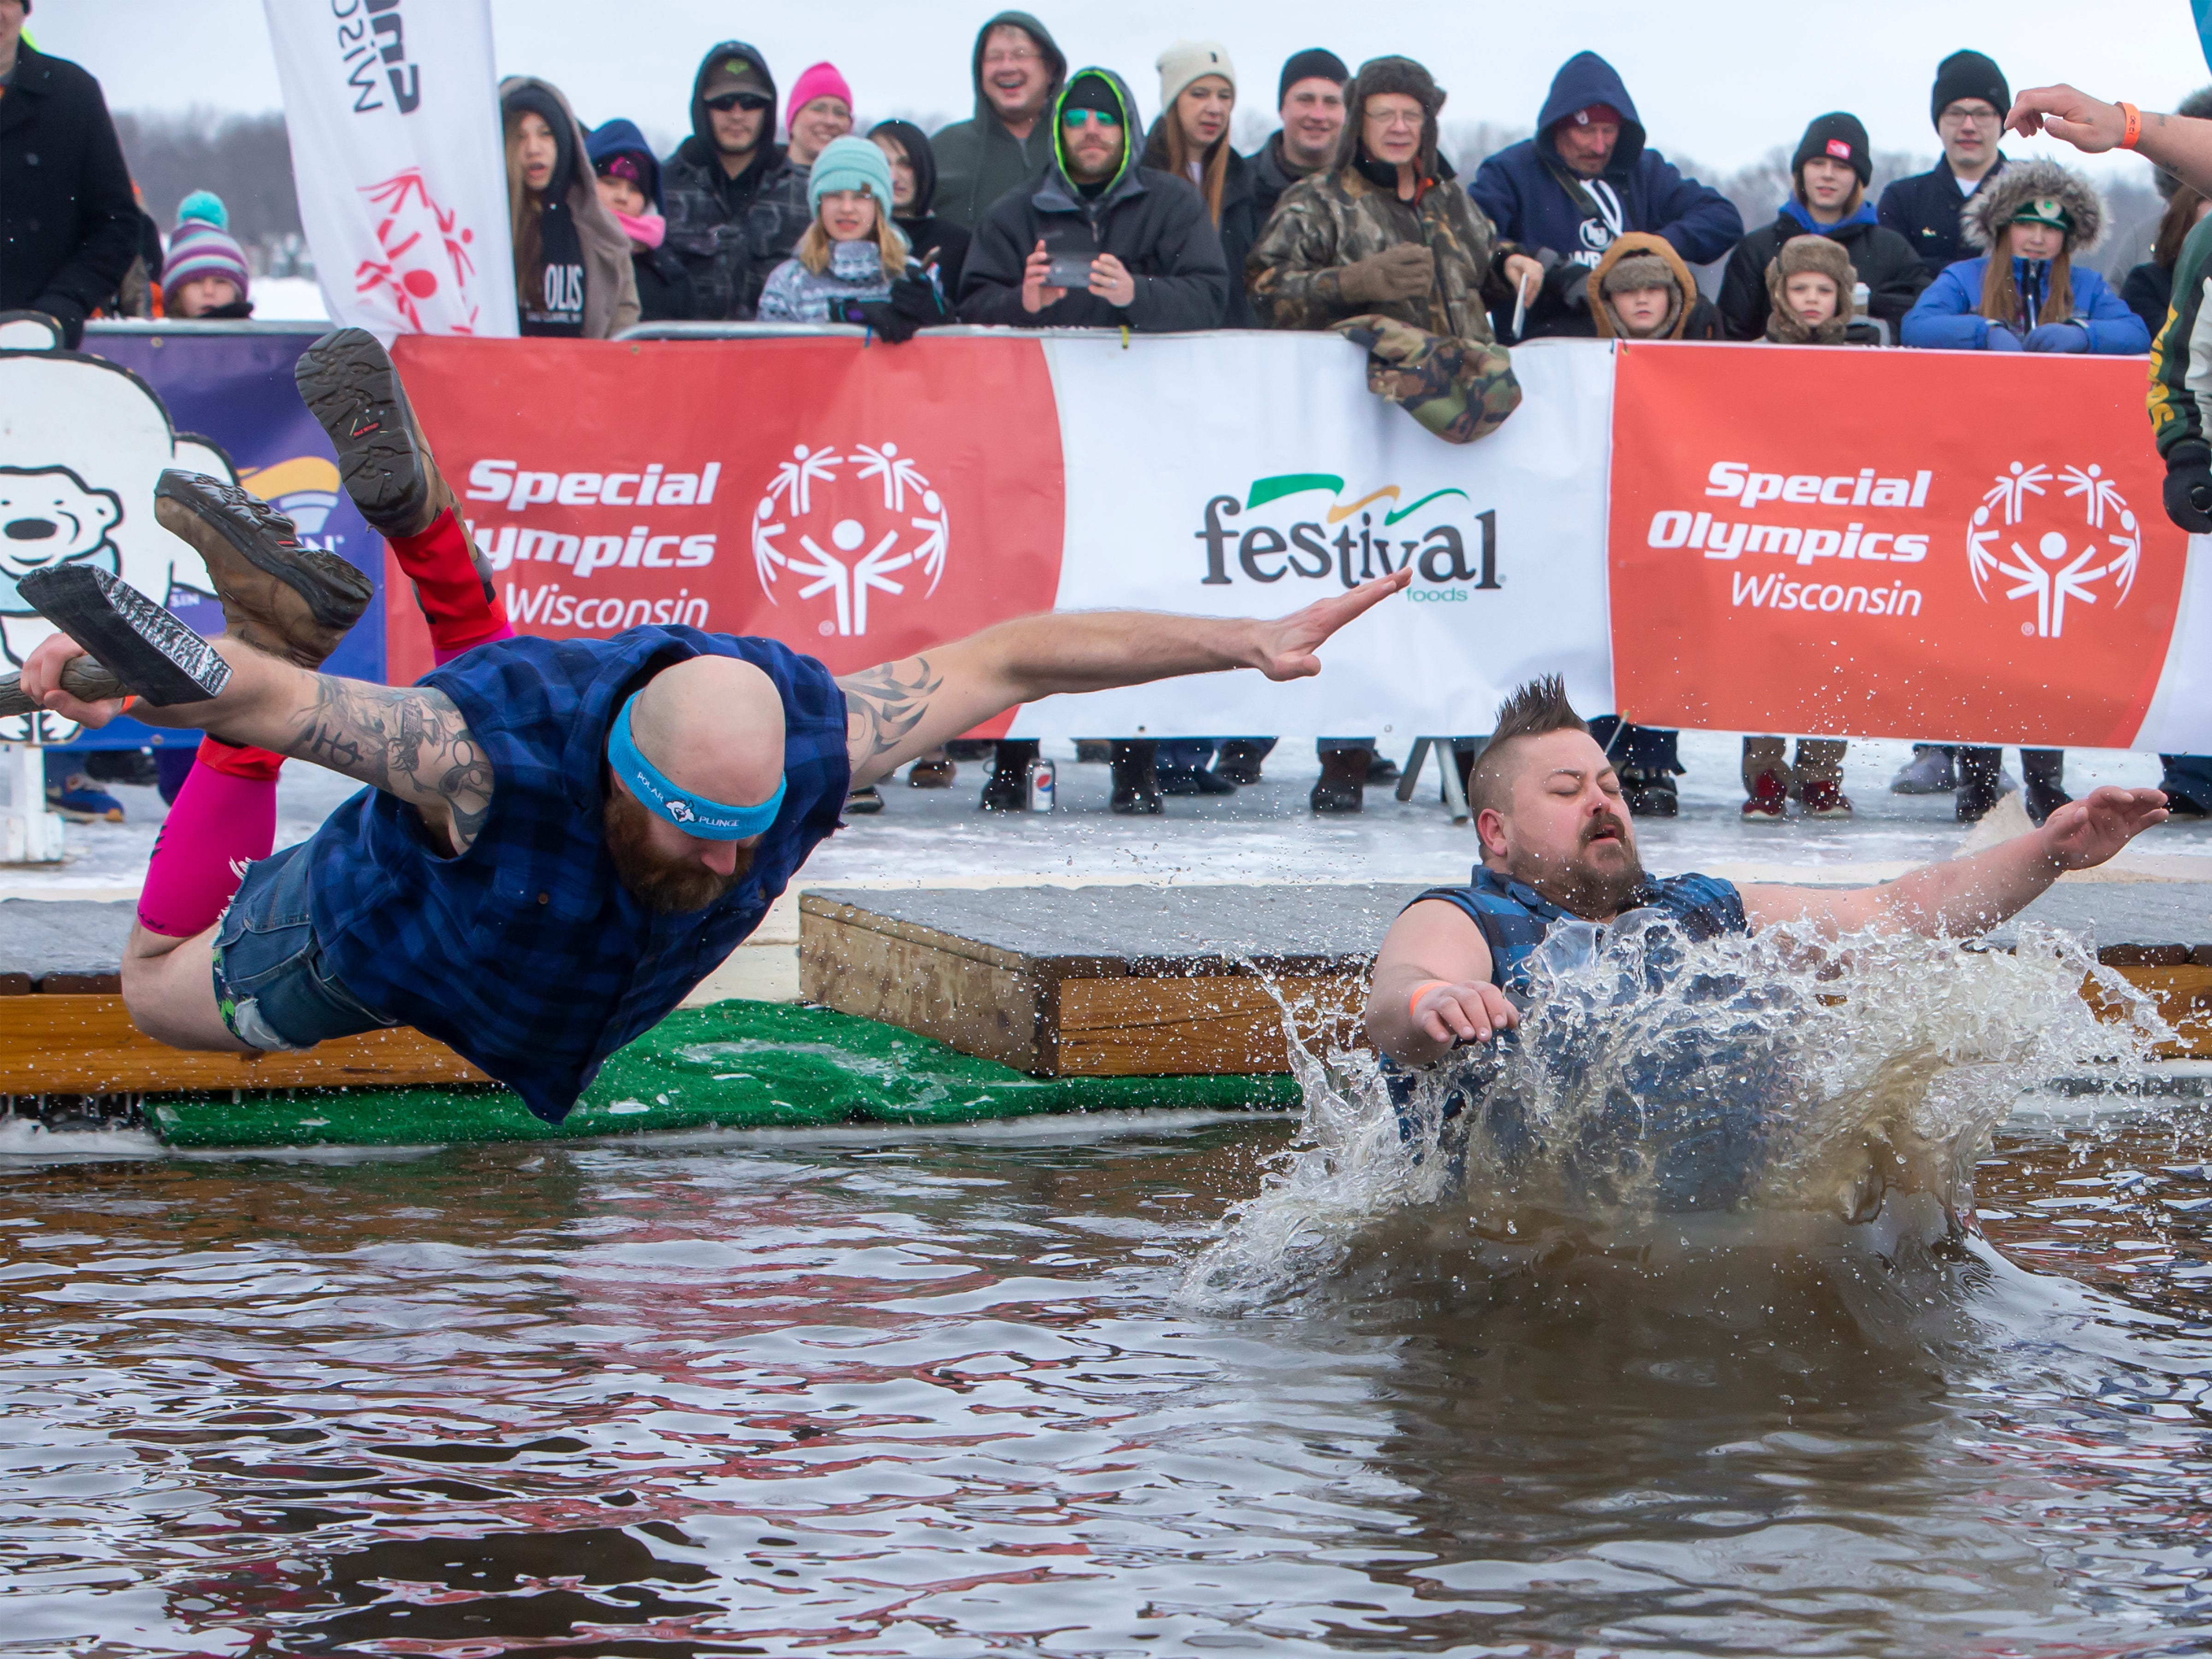 Jered Blatz, left, and Kory Jacobs attend the event early to be one of the first to plunge into the cold water during the Special Olympics Wisconsin Polar Plunge in Oshkosh, Wis, on Saturday, February 16, 2019, at Miller's Bay in Menominee Park.